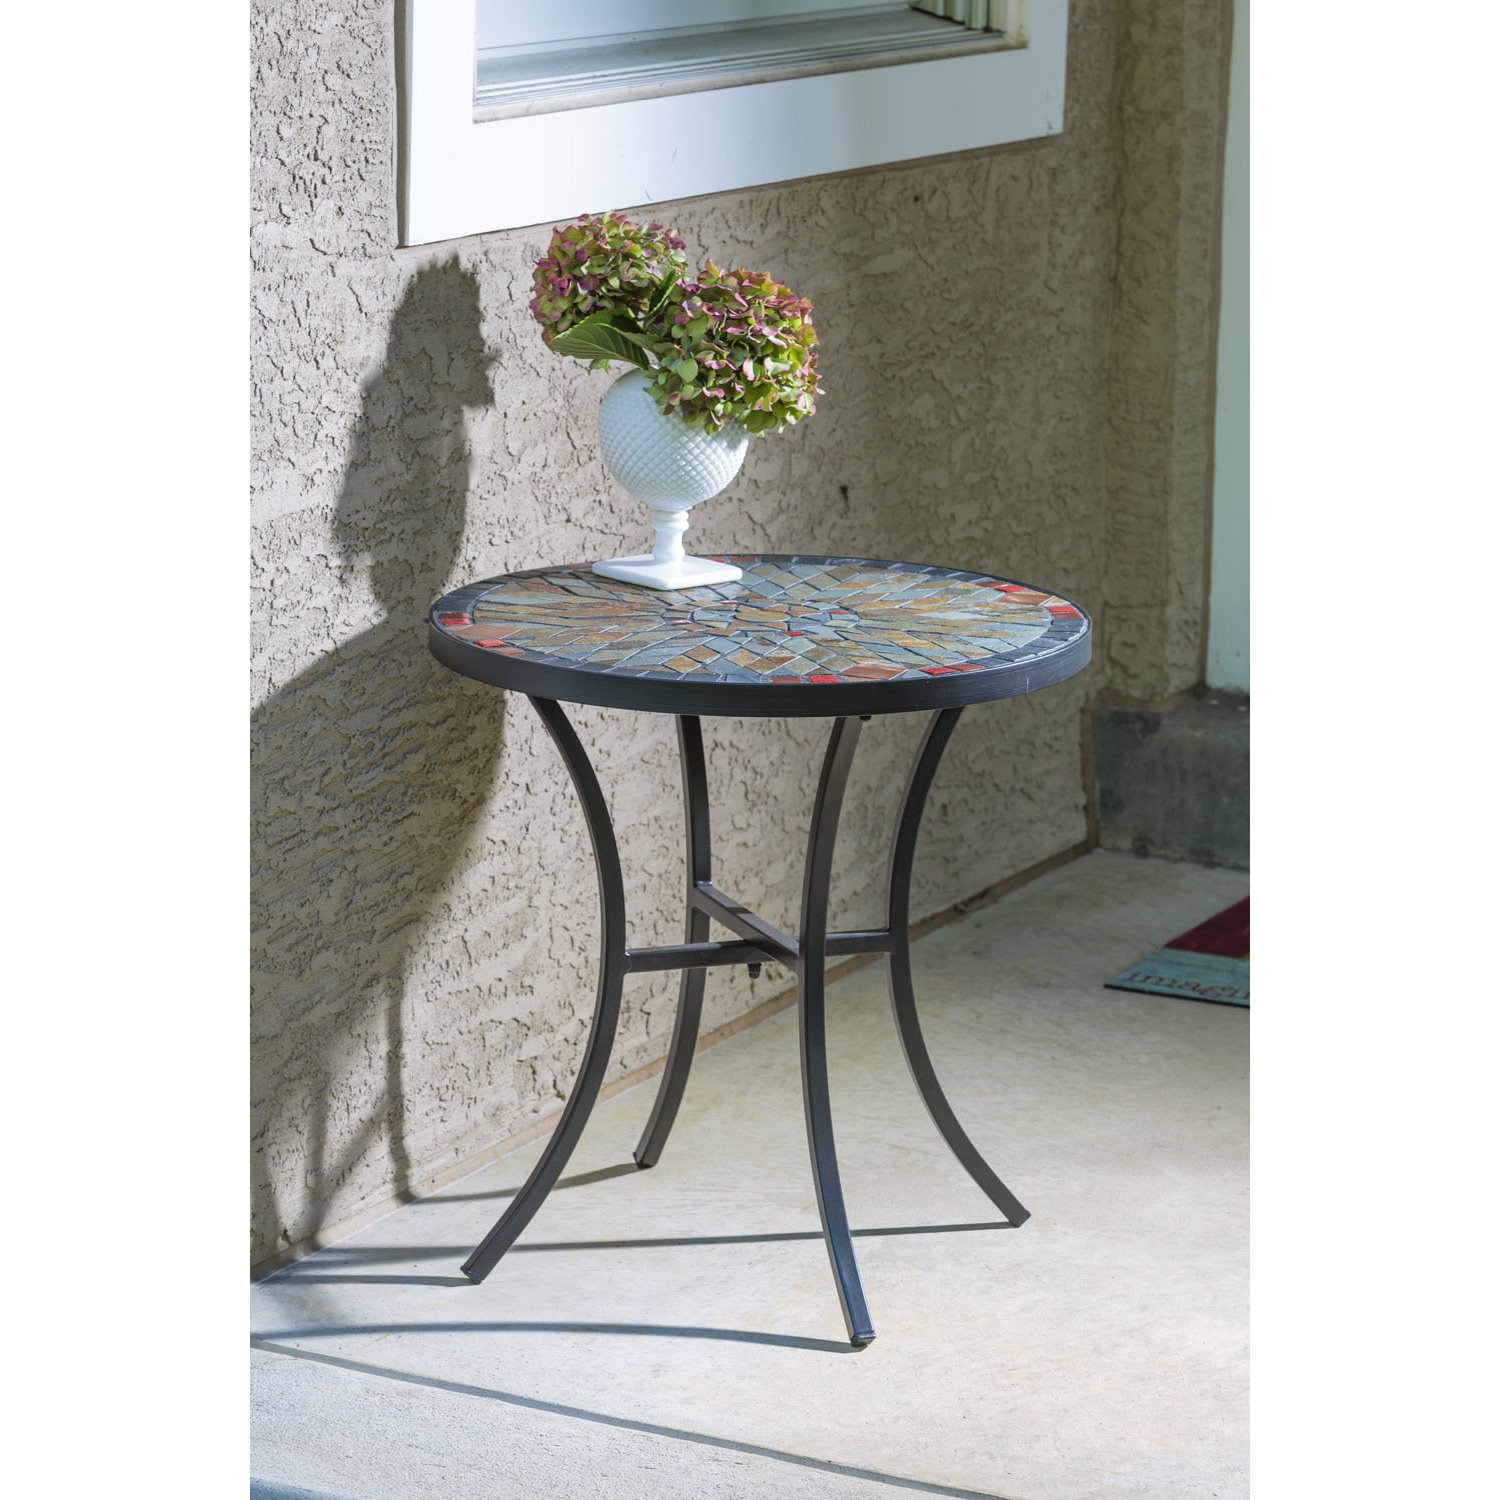 sagrada ceramic inch round mosaic outdoor side table with tile top and base accent free shipping today small couches for spaces dresser drawer pulls wheels kitchen sideboard